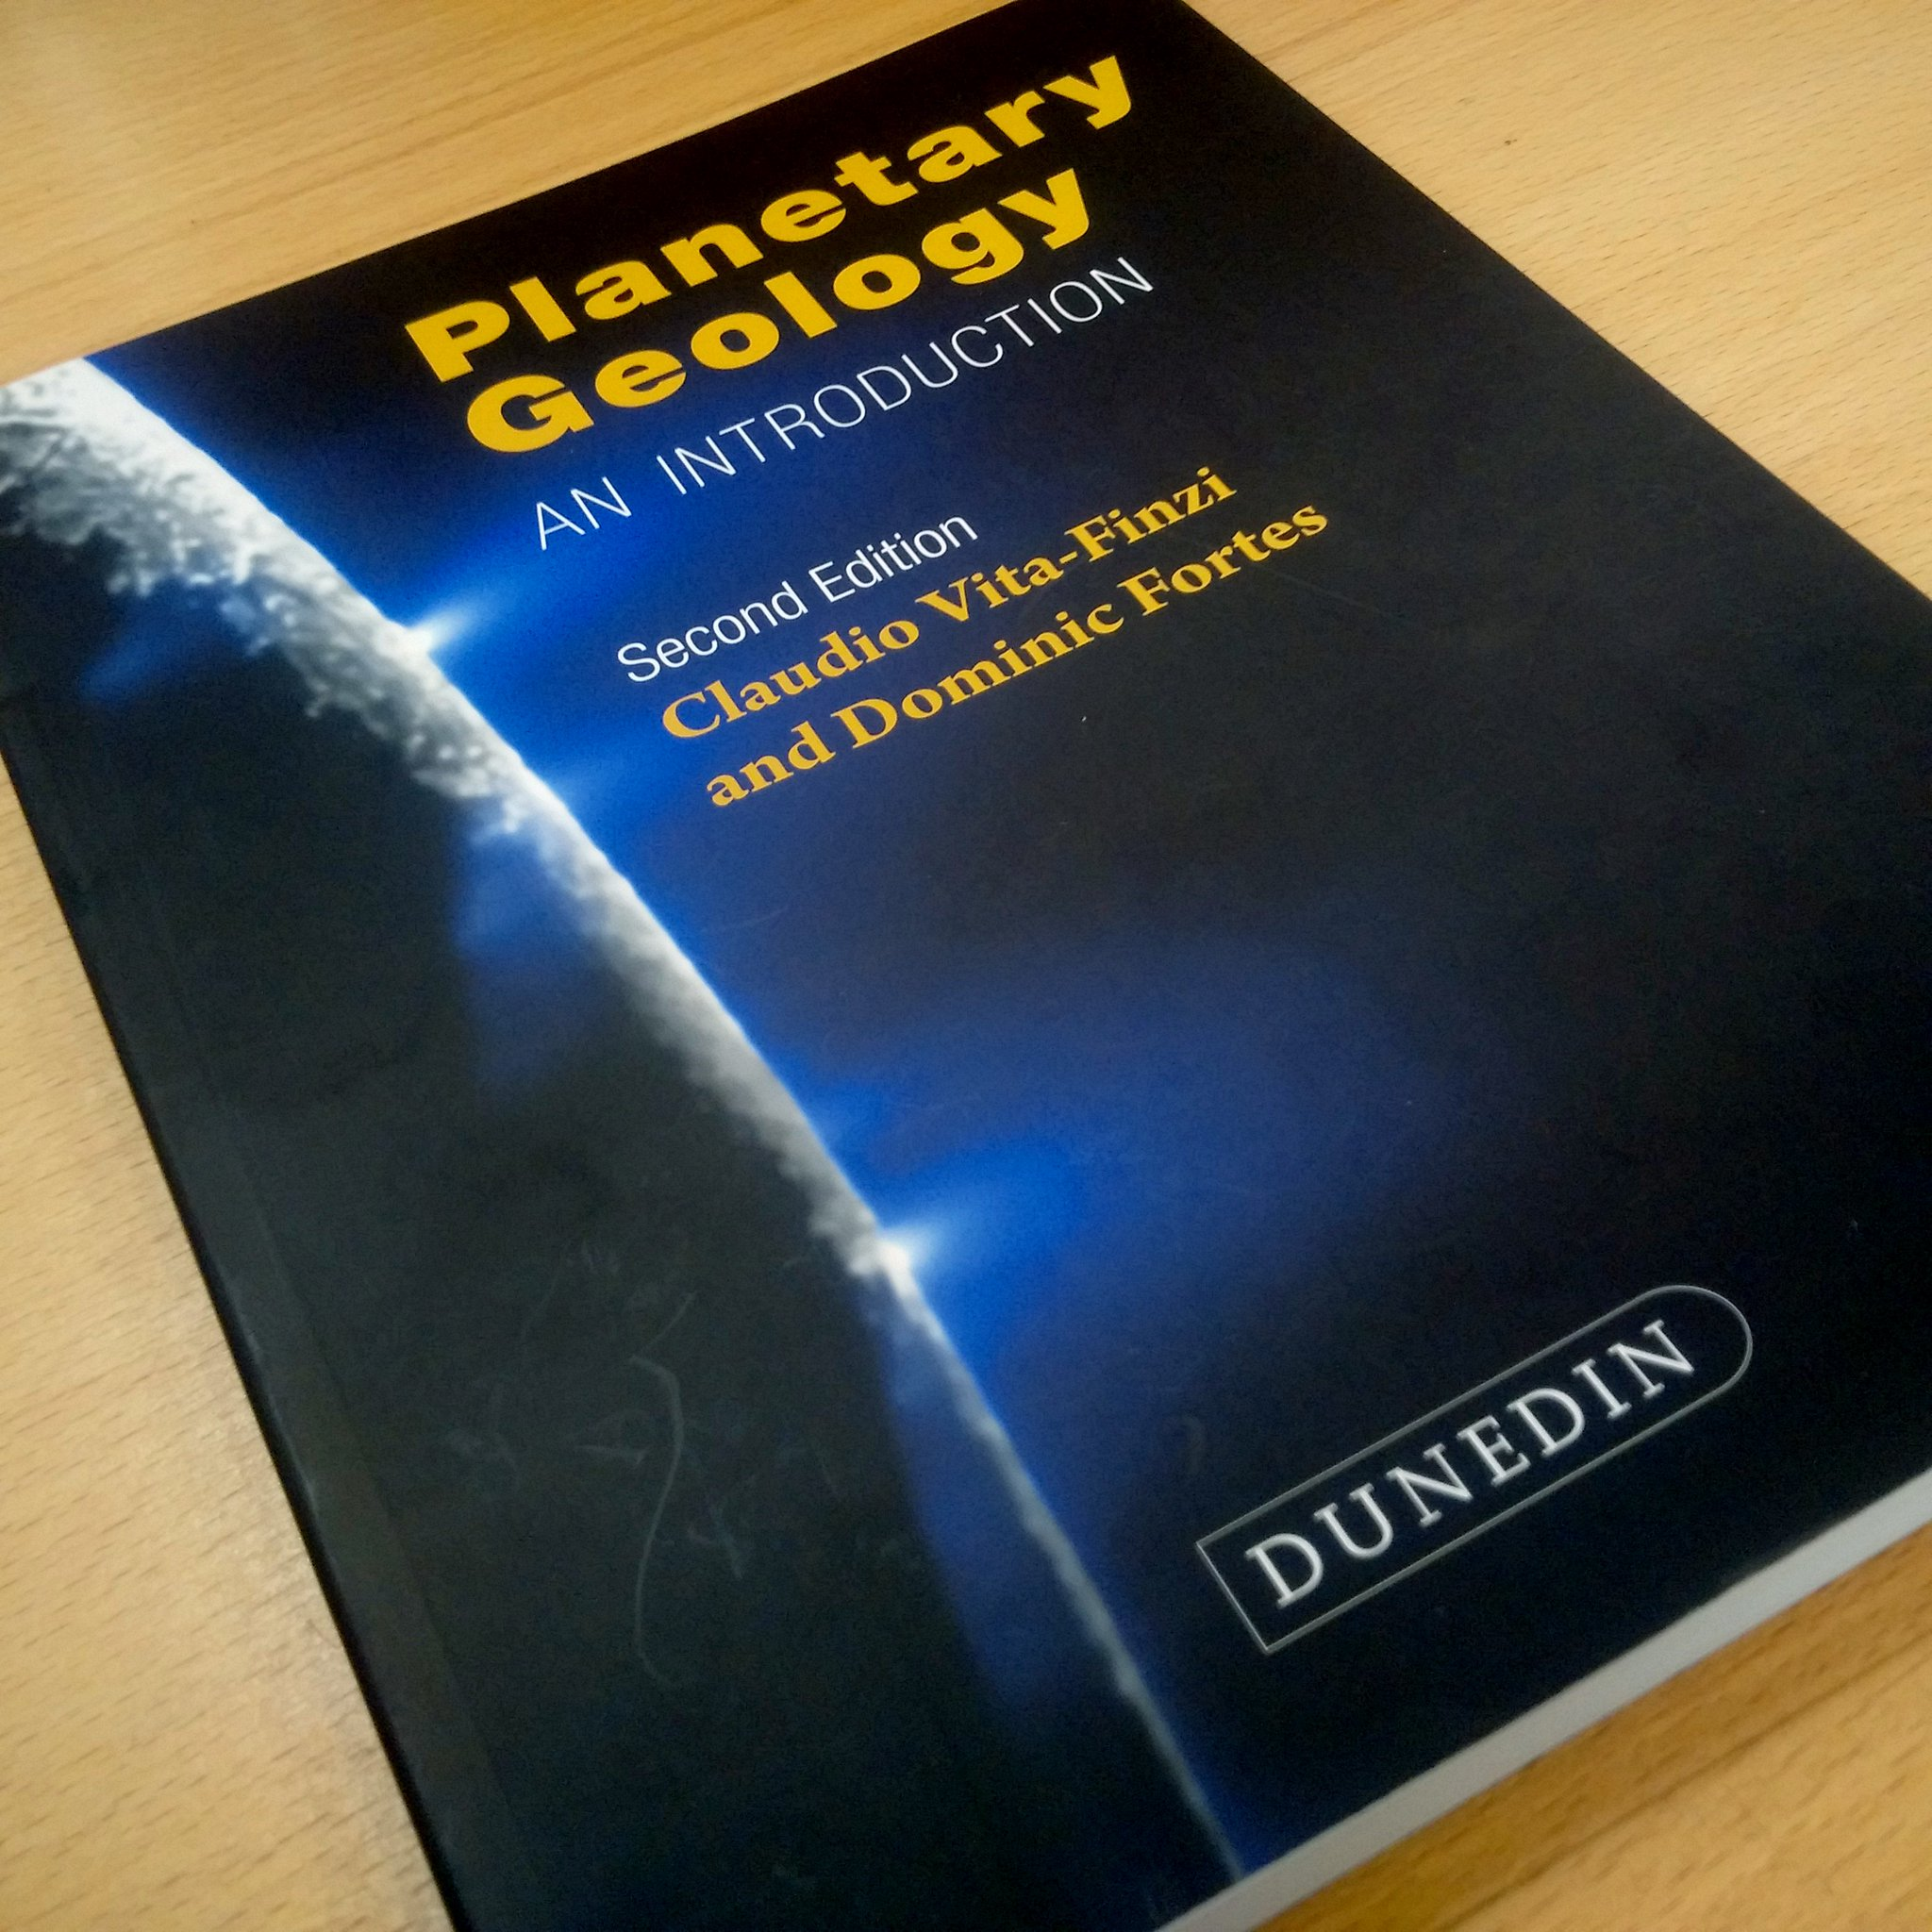 """BGS Geology Shop on Twitter: """"Did you catch #OrionidMeteorShower? Learn  about planetary geology in this book! On sale in Keyworth and London."""